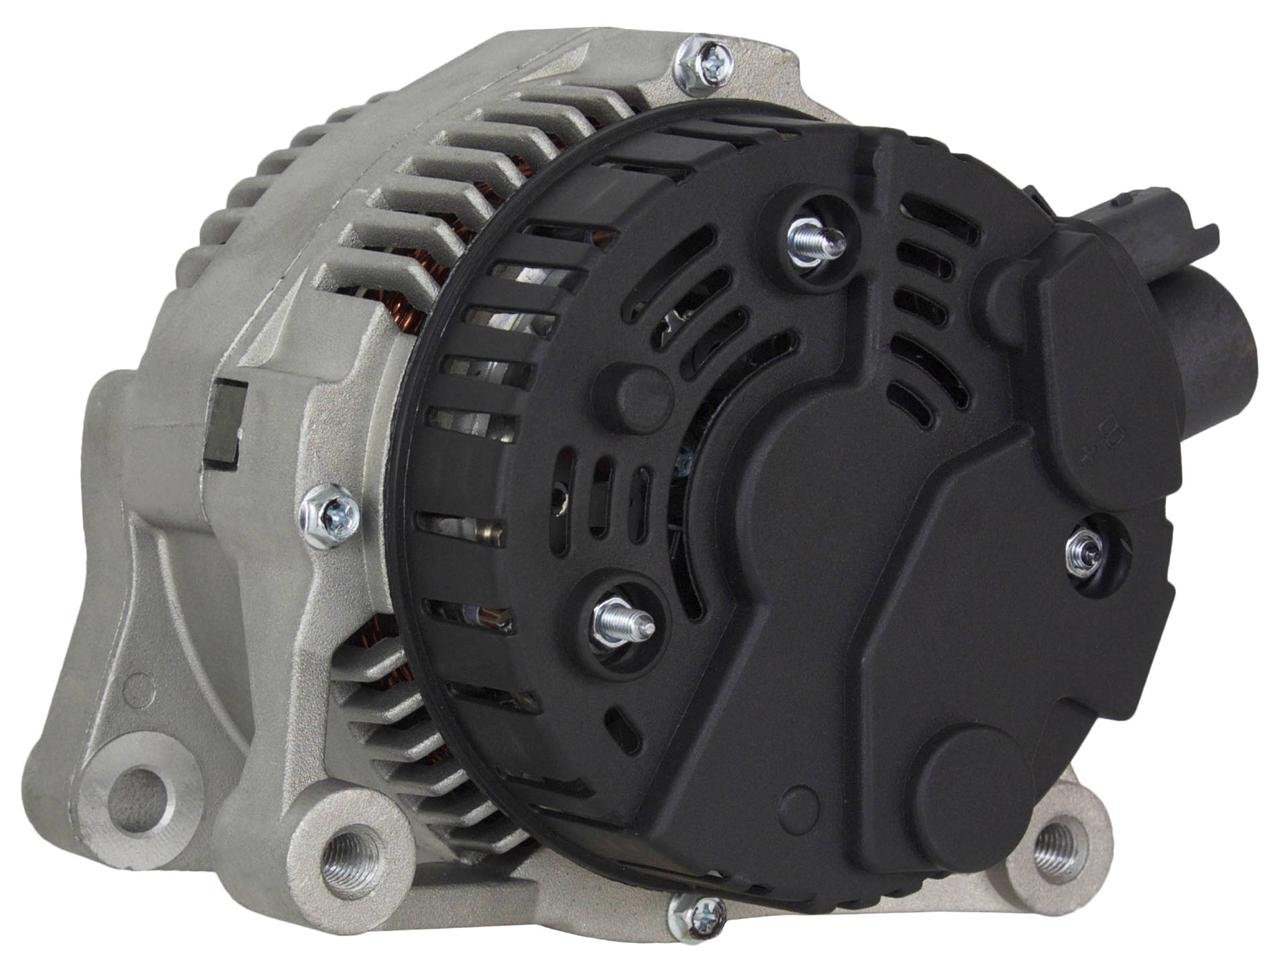 Amazon.com: NEW ALTERNATOR FITS EUROPEAN MODEL CITROEN BERLINGO 1.4 1.6 1.9 DIESEL 2002-ON 5702E5 A5TA6391 440007 578845: Automotive